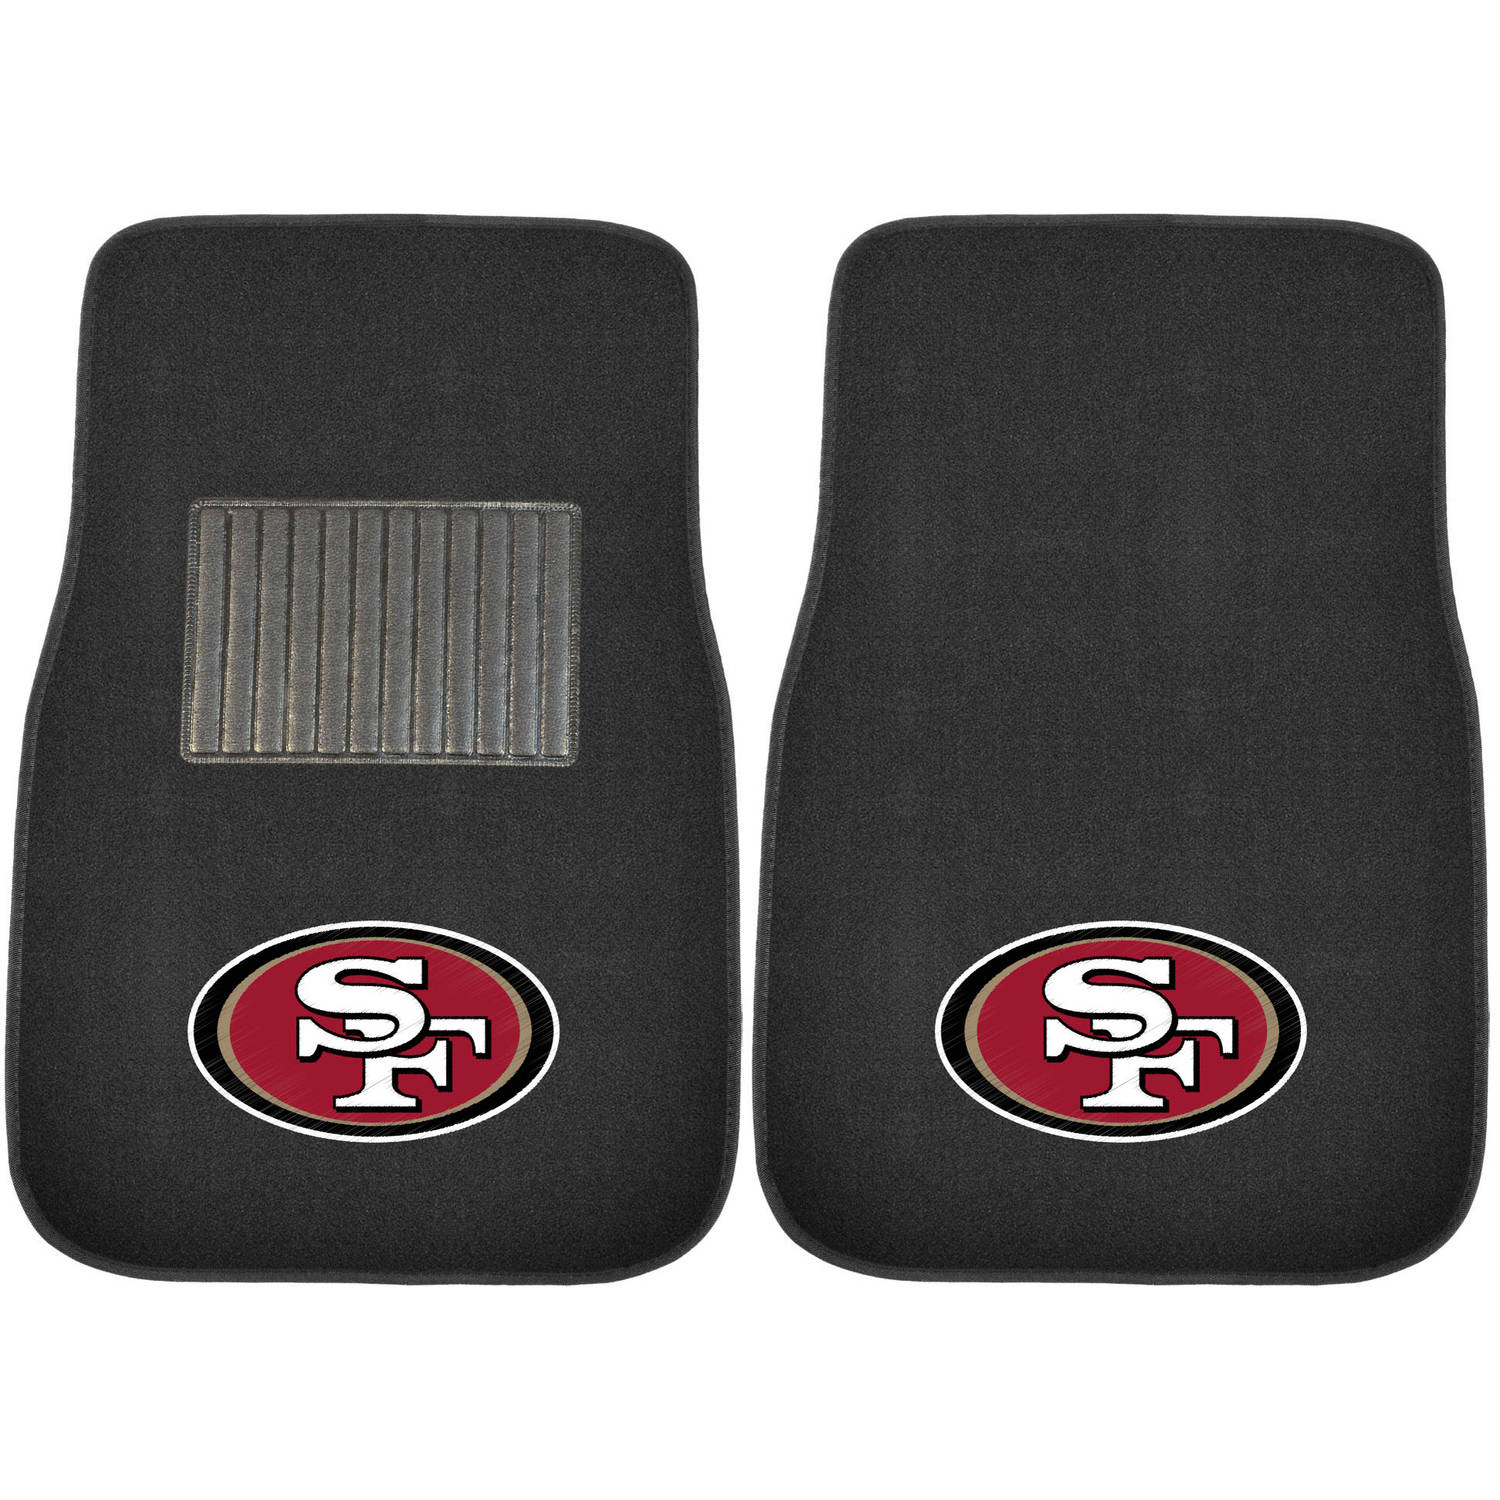 NFL San Francisco 49ers Embroidered Car Mats